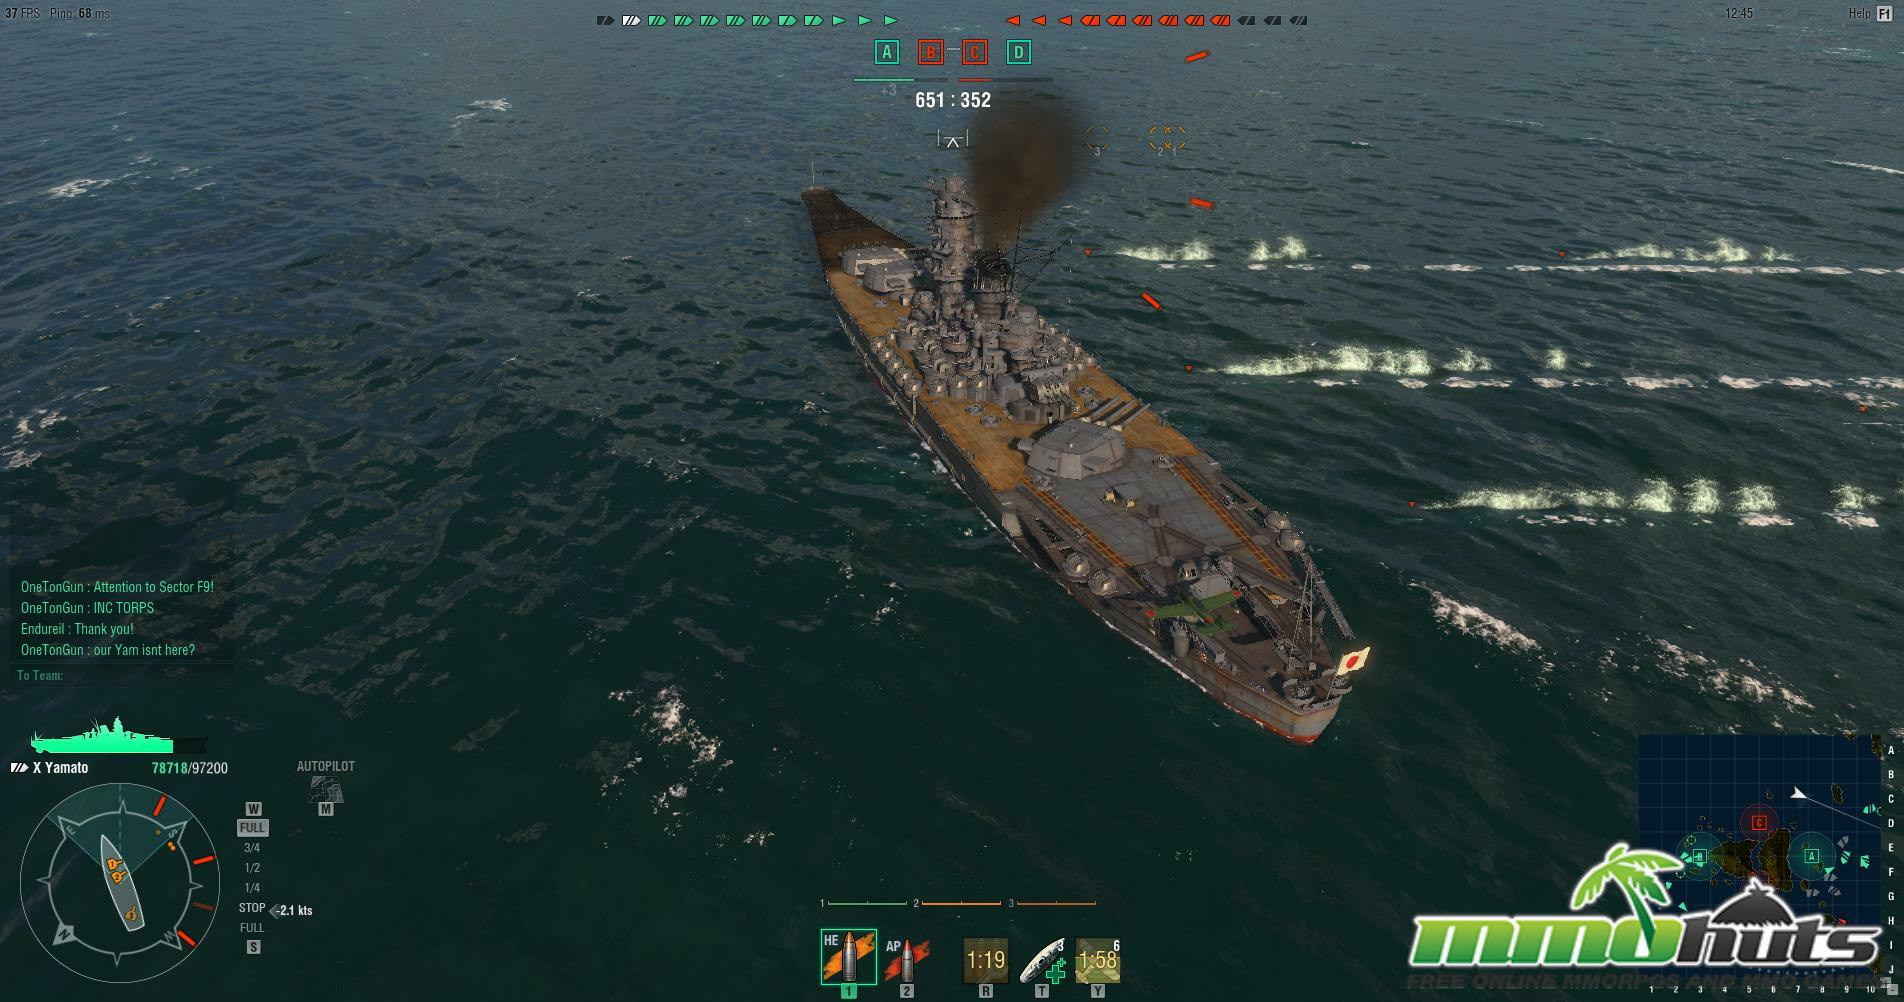 worldofwarships 2015-10-01 16-35-51-10